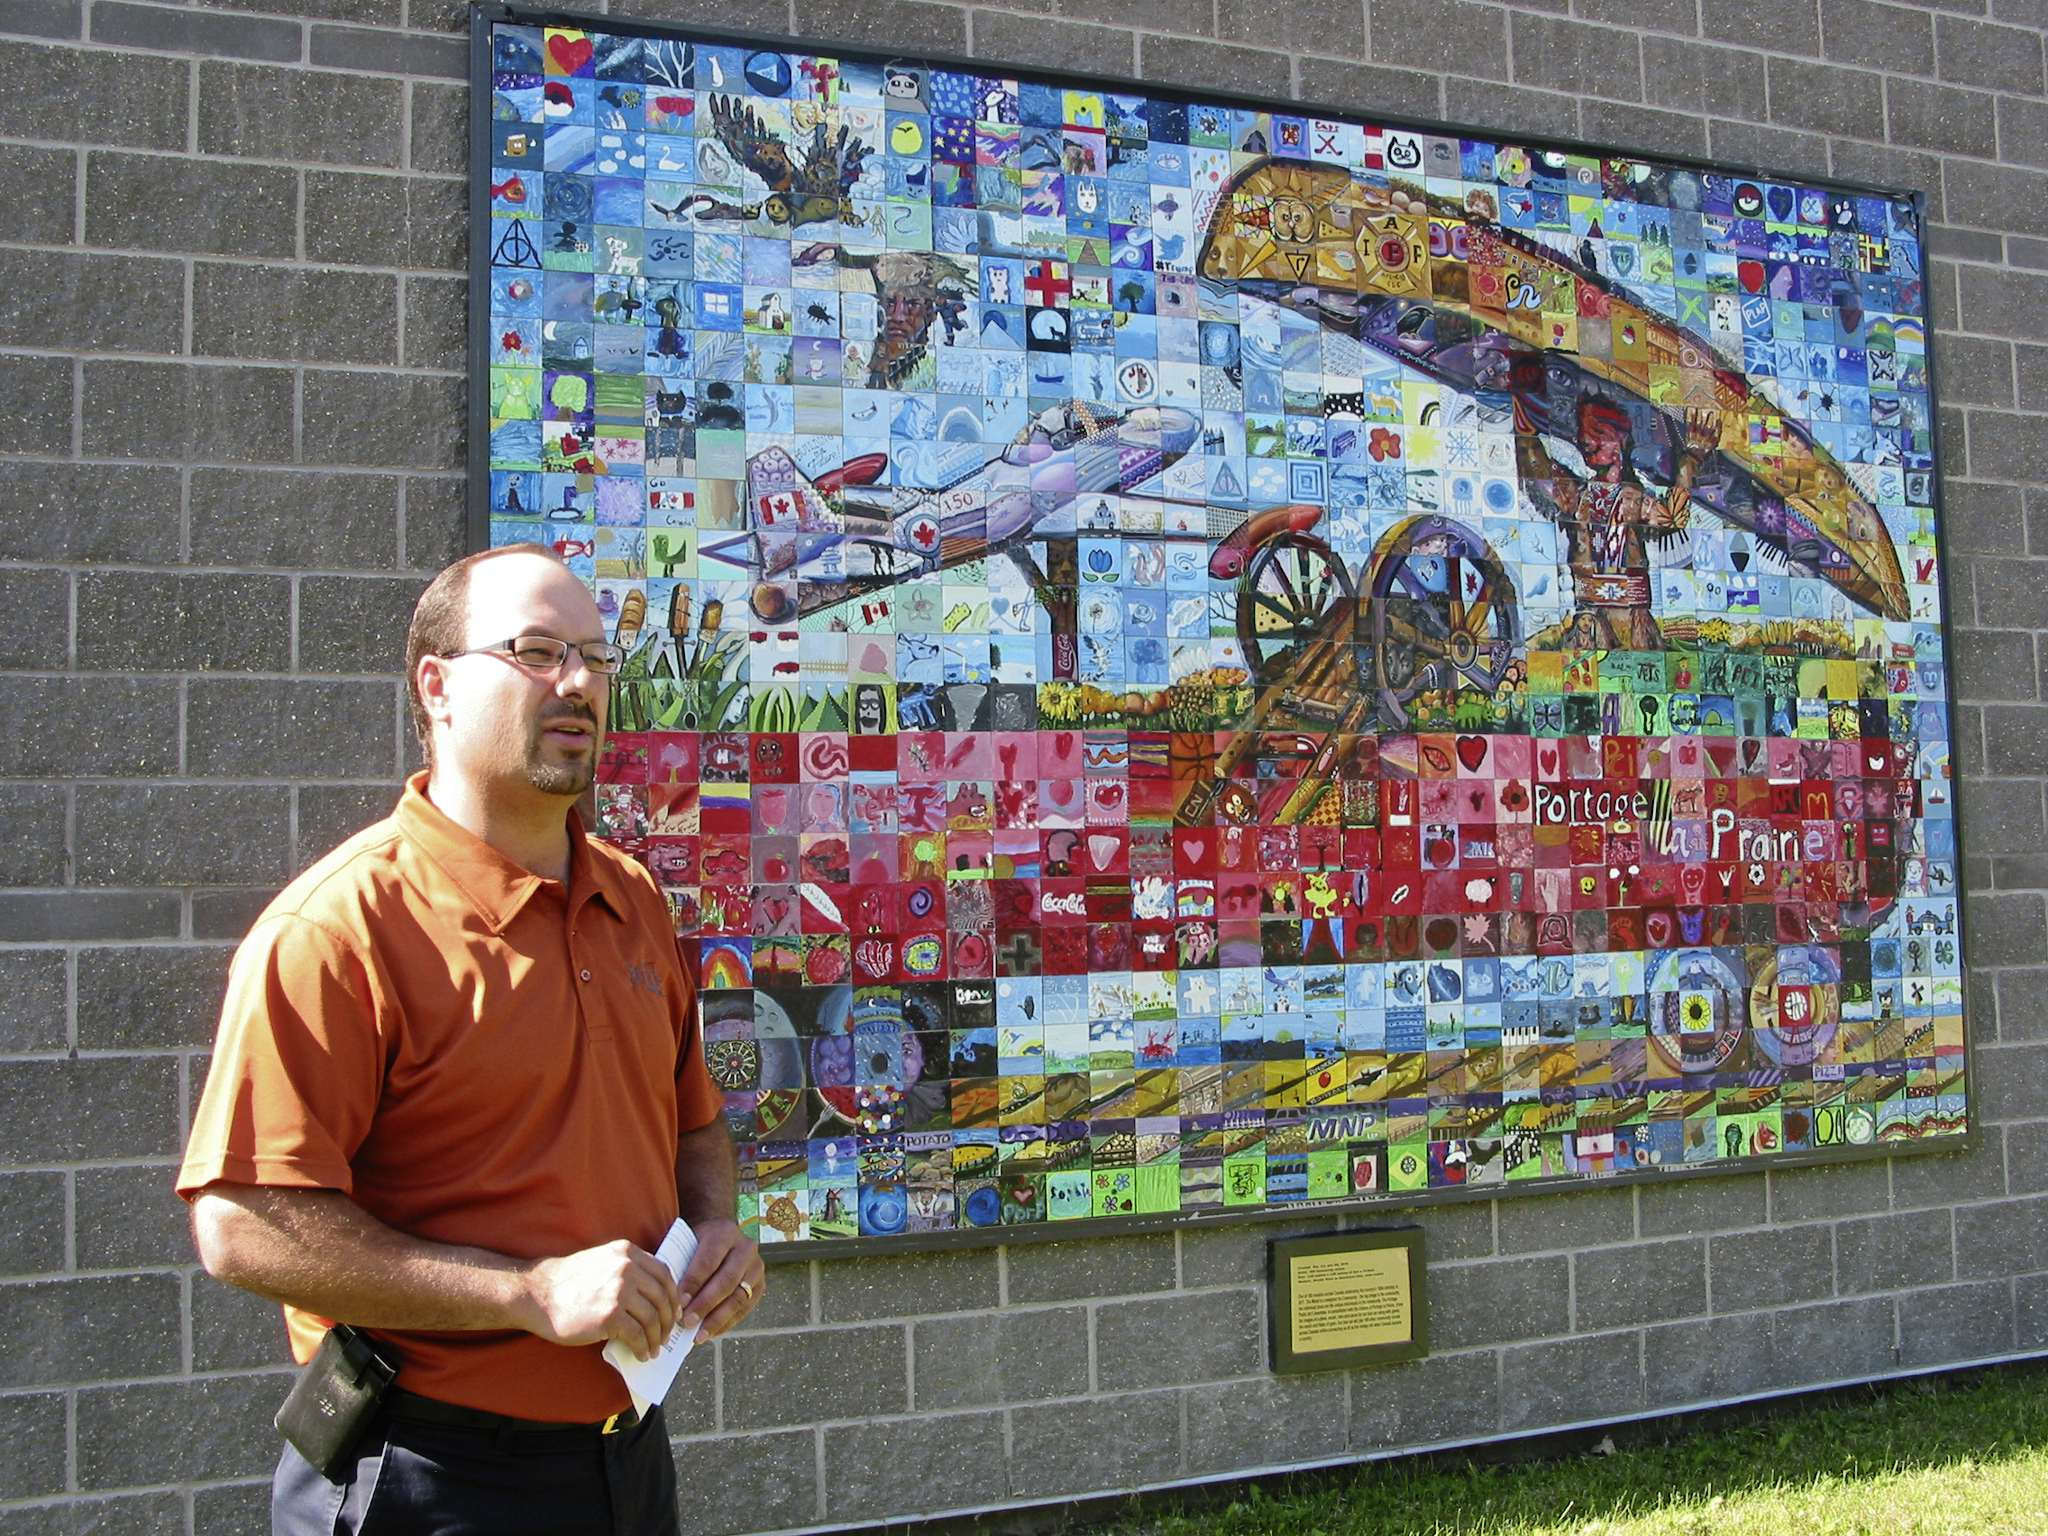 Portage la Prairie deputy mayor Brent Budz spoke at the Canada 150 mosaic unveiling at Stride Place on June 27.